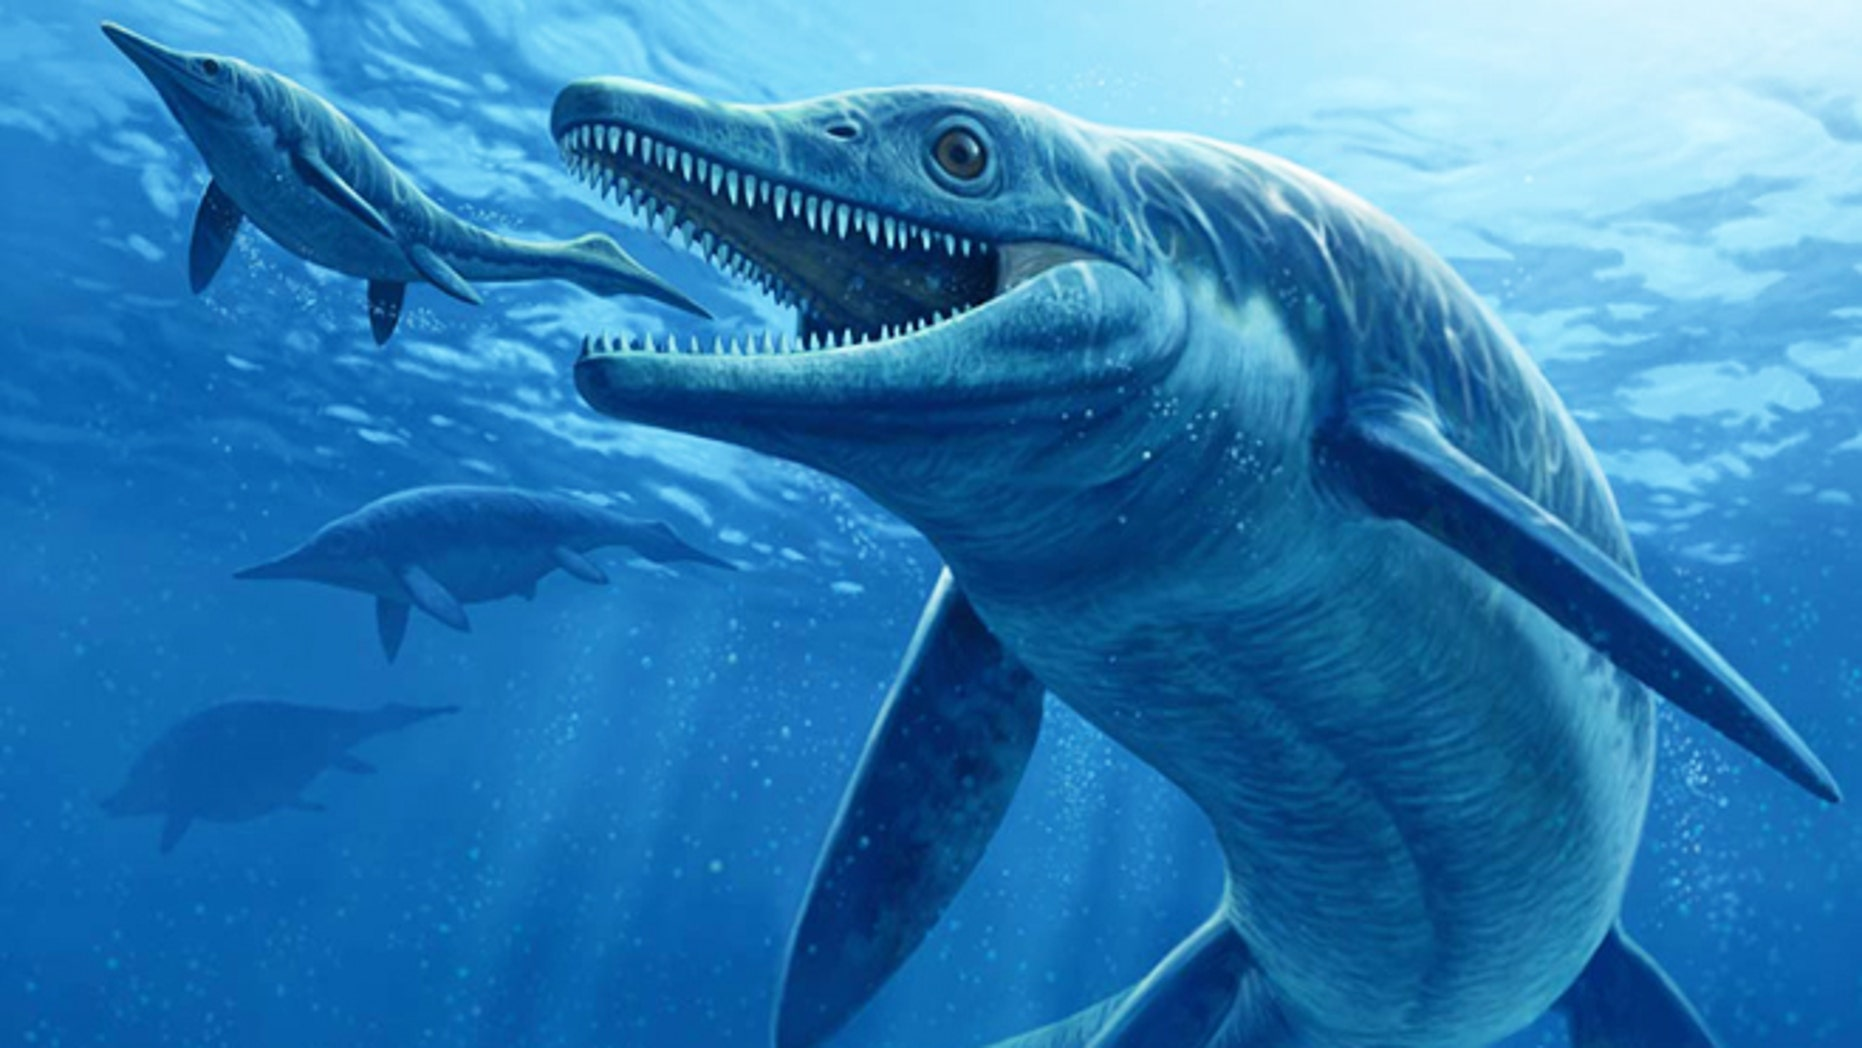 The giant ichthyosaur ruled the oceans some 244 million years ago. Here's what it may have looked like seizing a meaty snack.